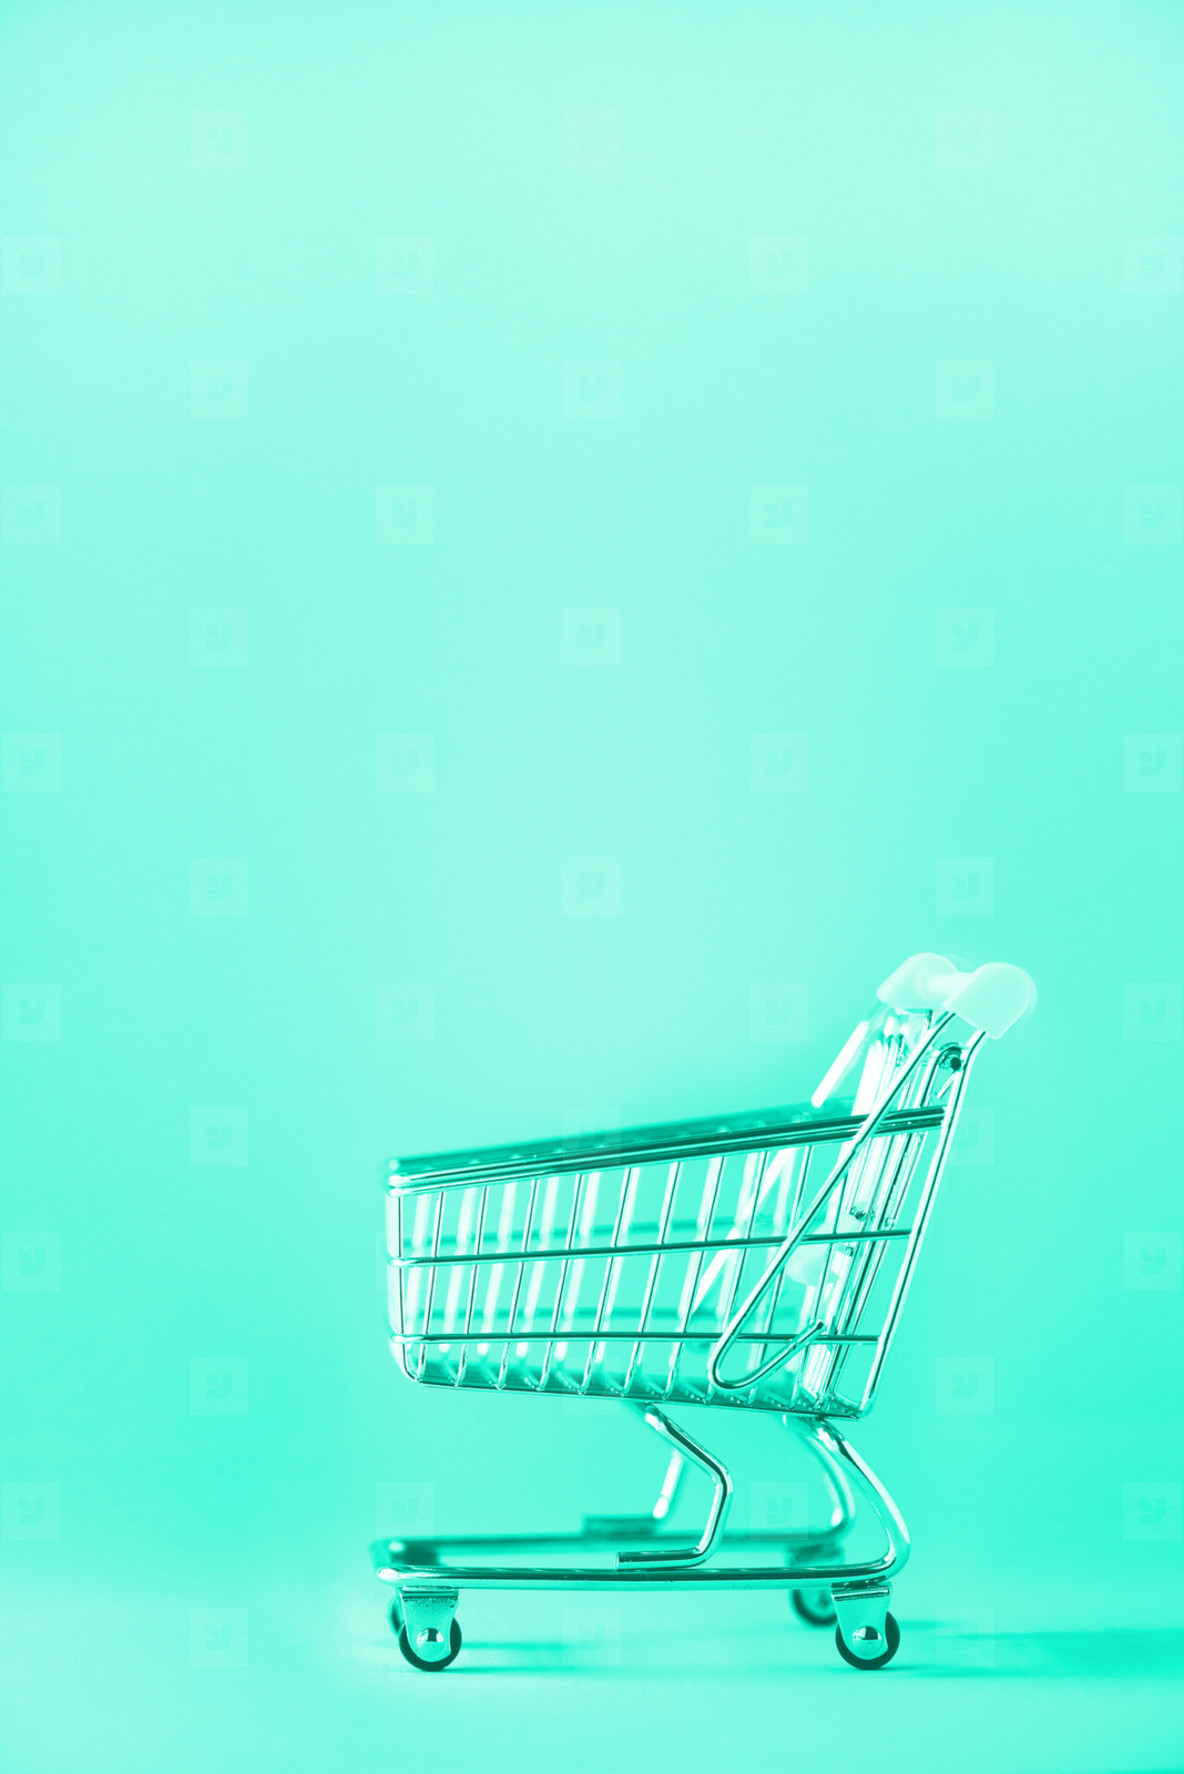 Shopping cart on mint color background  Minimalism style  Creative design  Copy space  Shop trolley at supermarket  Sale  discount  shopaholism concept  Trendy green and turquoise color